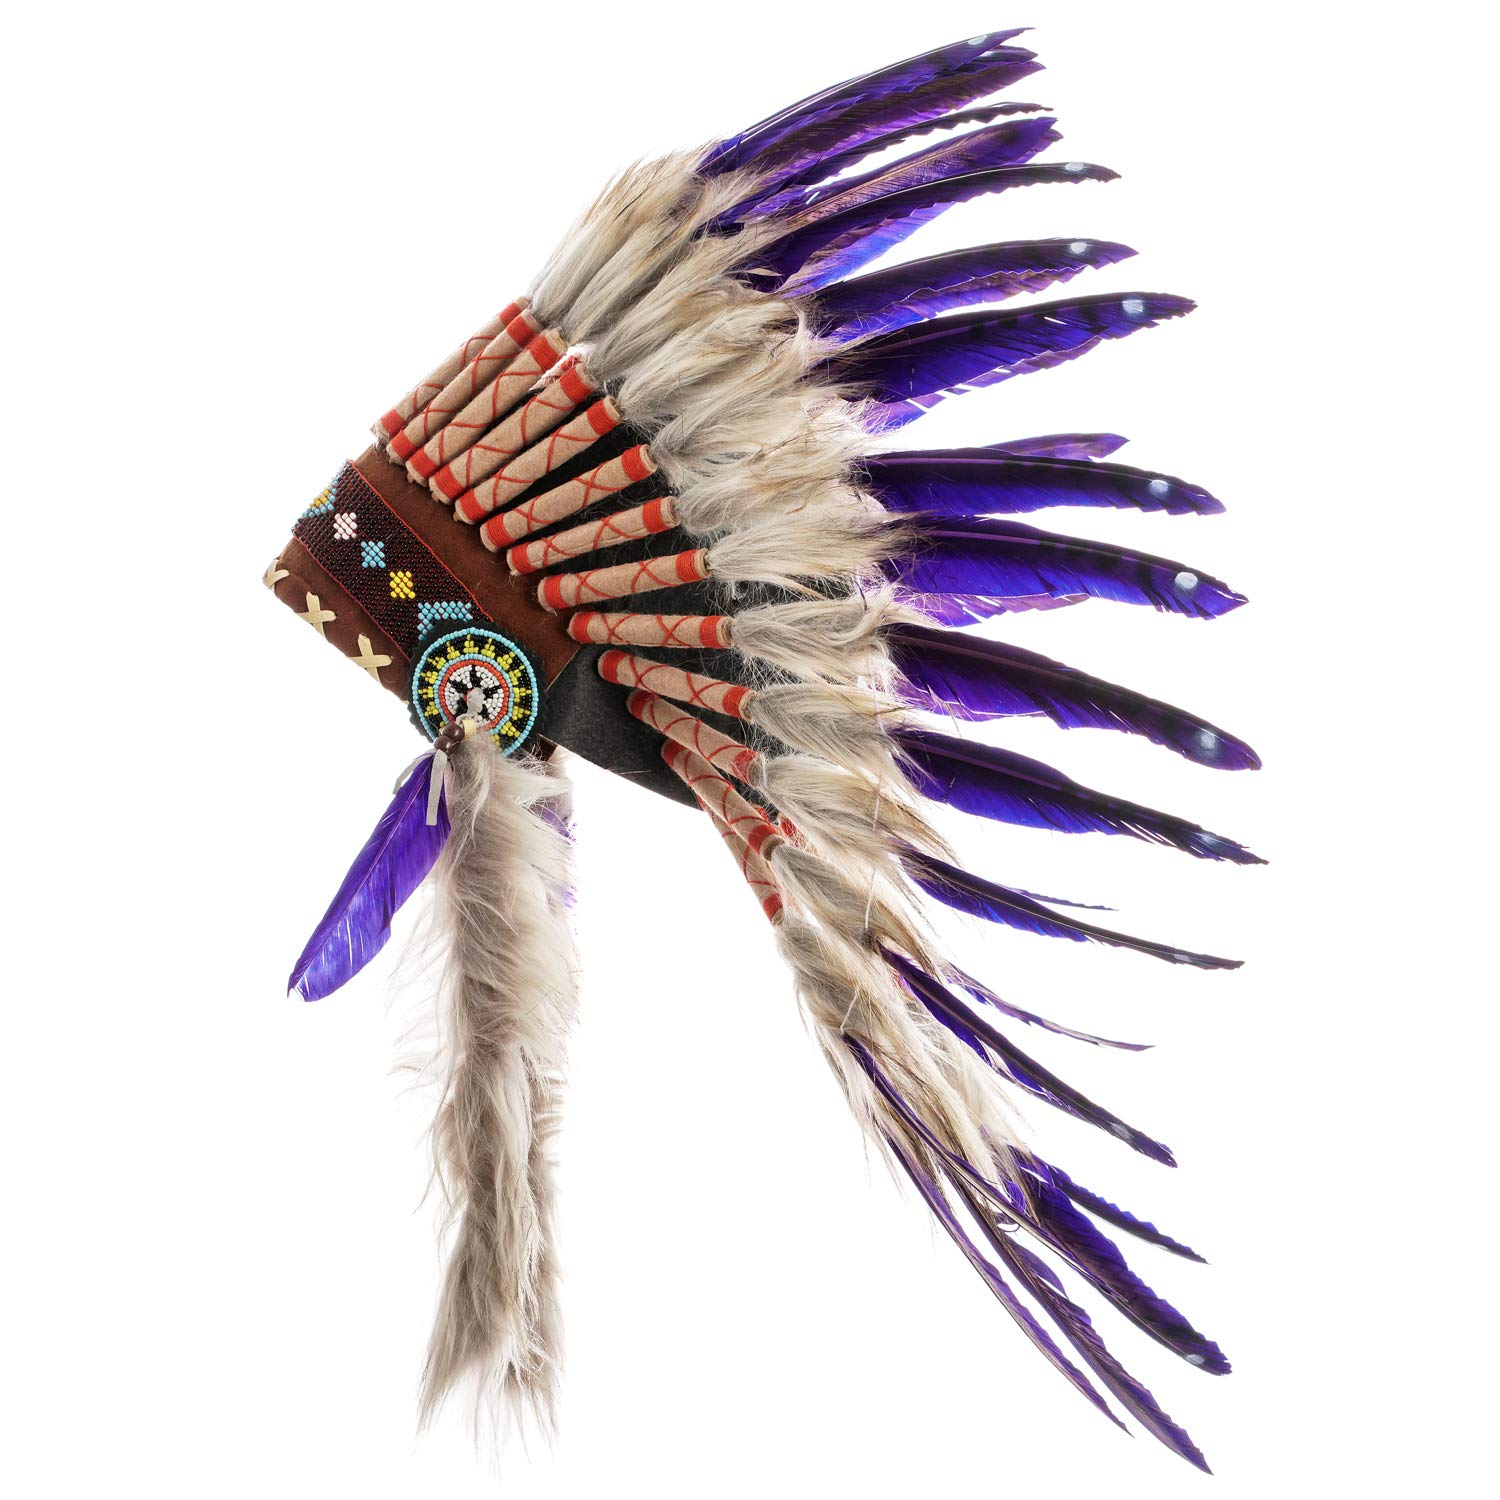 Novum Crafts Feather Headdress | Native American Indian Inspired | Choose Color